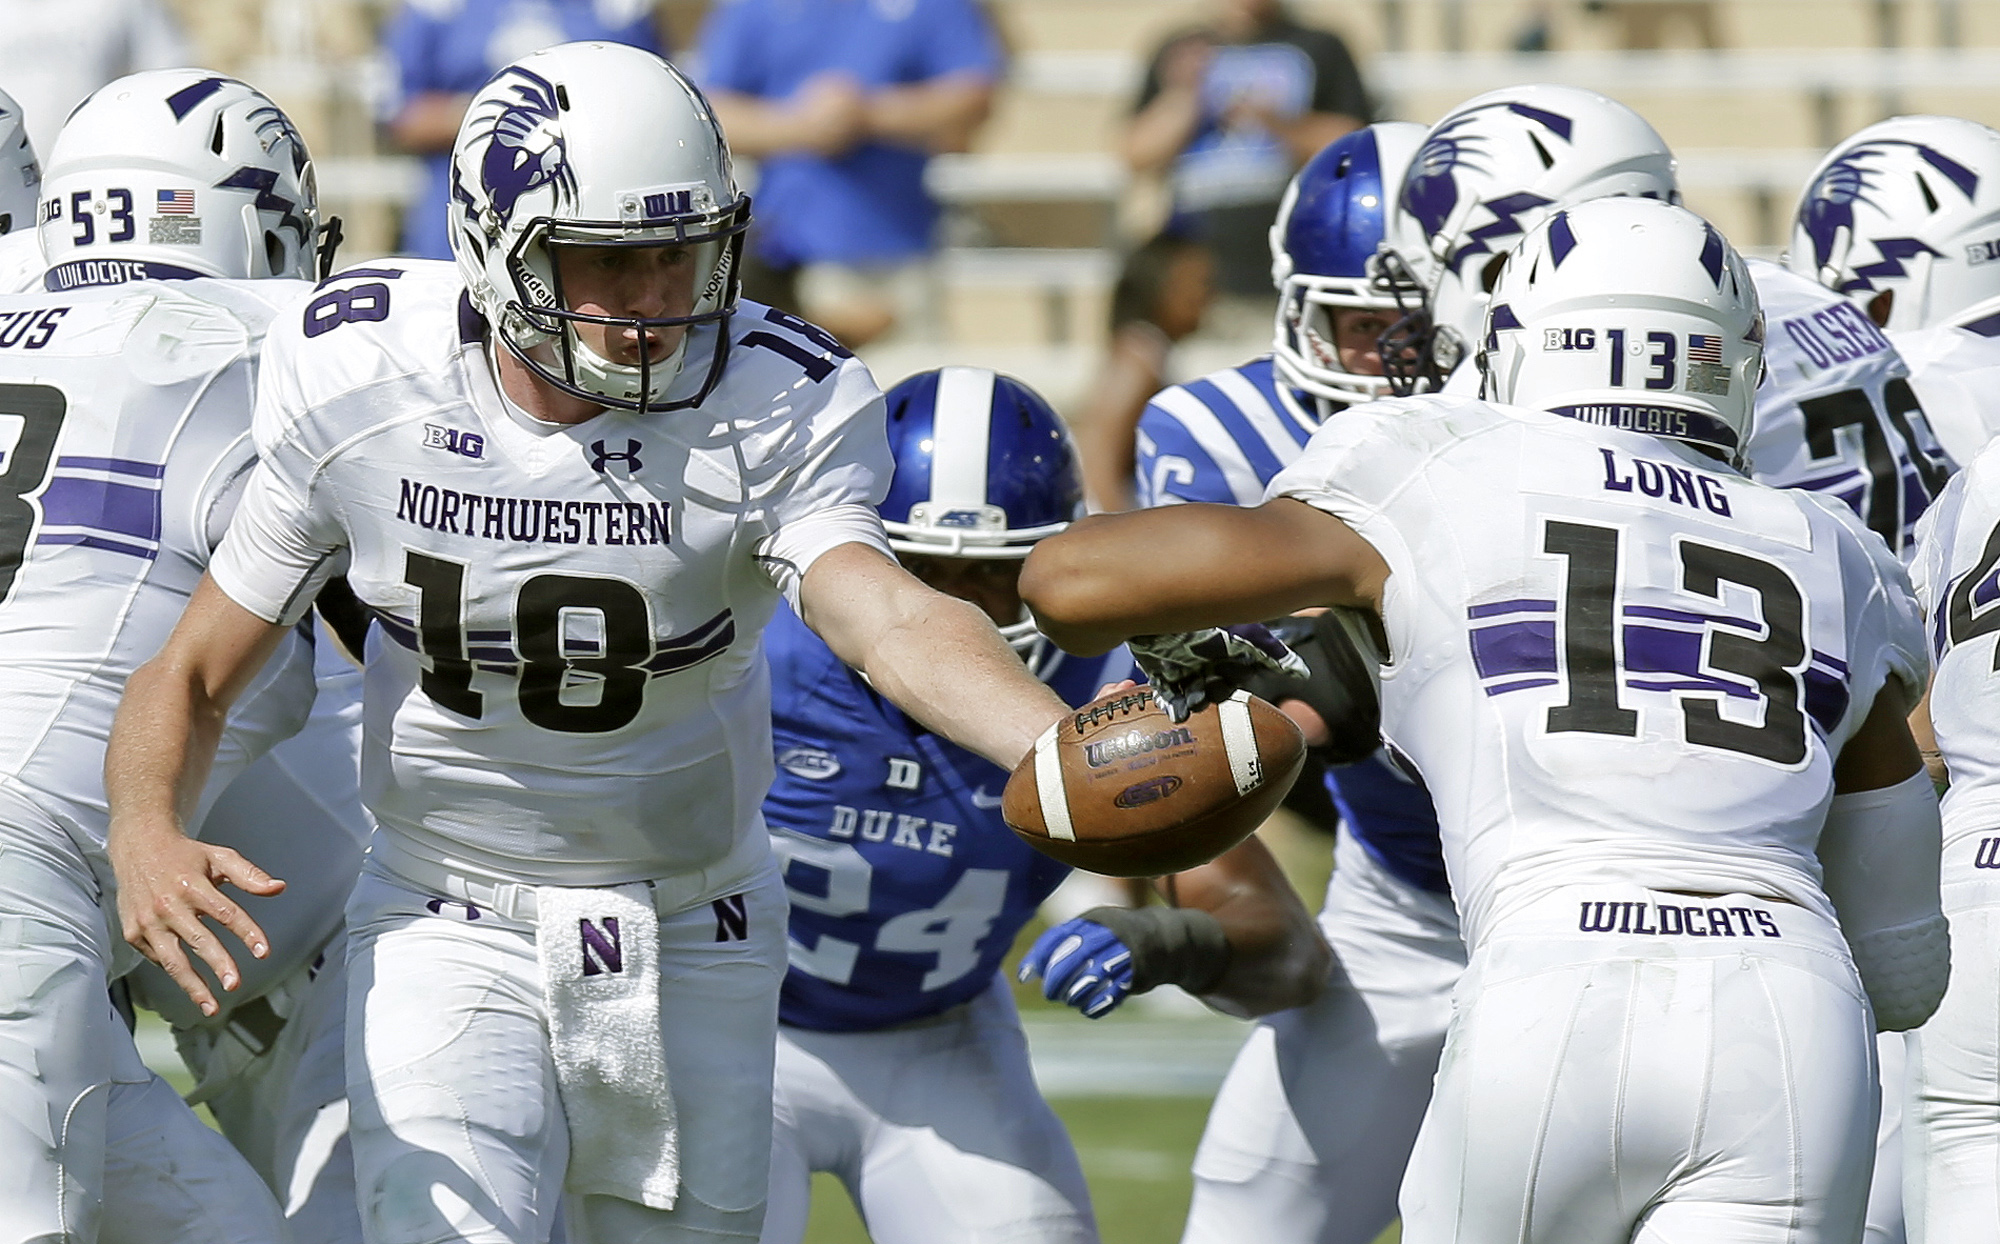 Northwestern quarterback Clayton Thorson hands off to Warren Long (13) during the second half of an NCAA college football game against Duke in Durham, N.C., Saturday, Sept. 19, 2015. Long scored a touchdown on the play. Northwestern won 19-10. (AP Photo/G